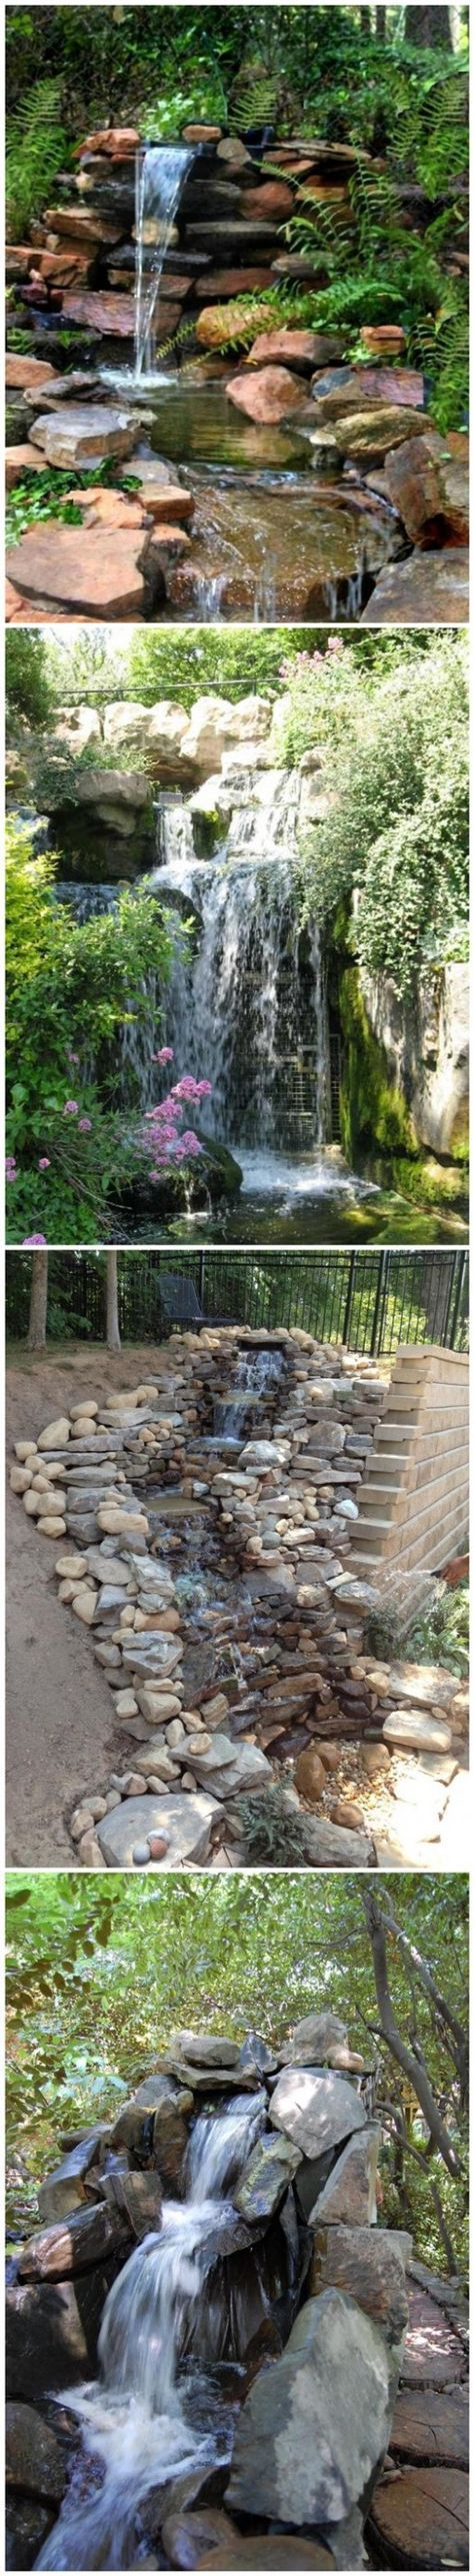 Best 25 garden waterfall ideas on pinterest diy for Making a garden pond